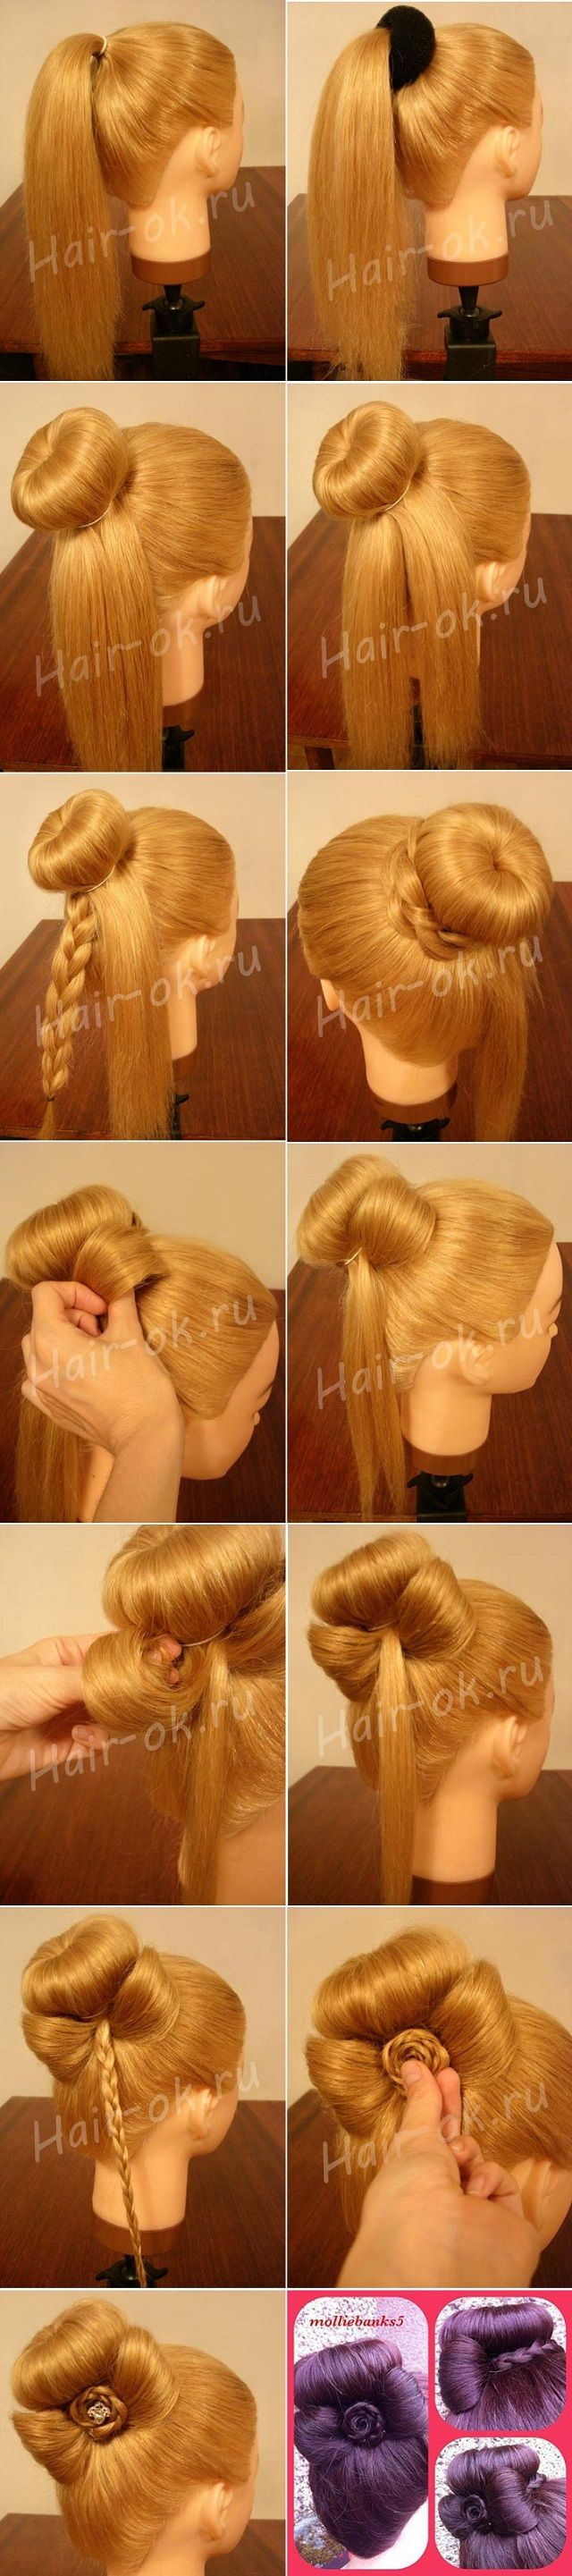 Pic tutorial for the sock bun with a hair bow and braid rose